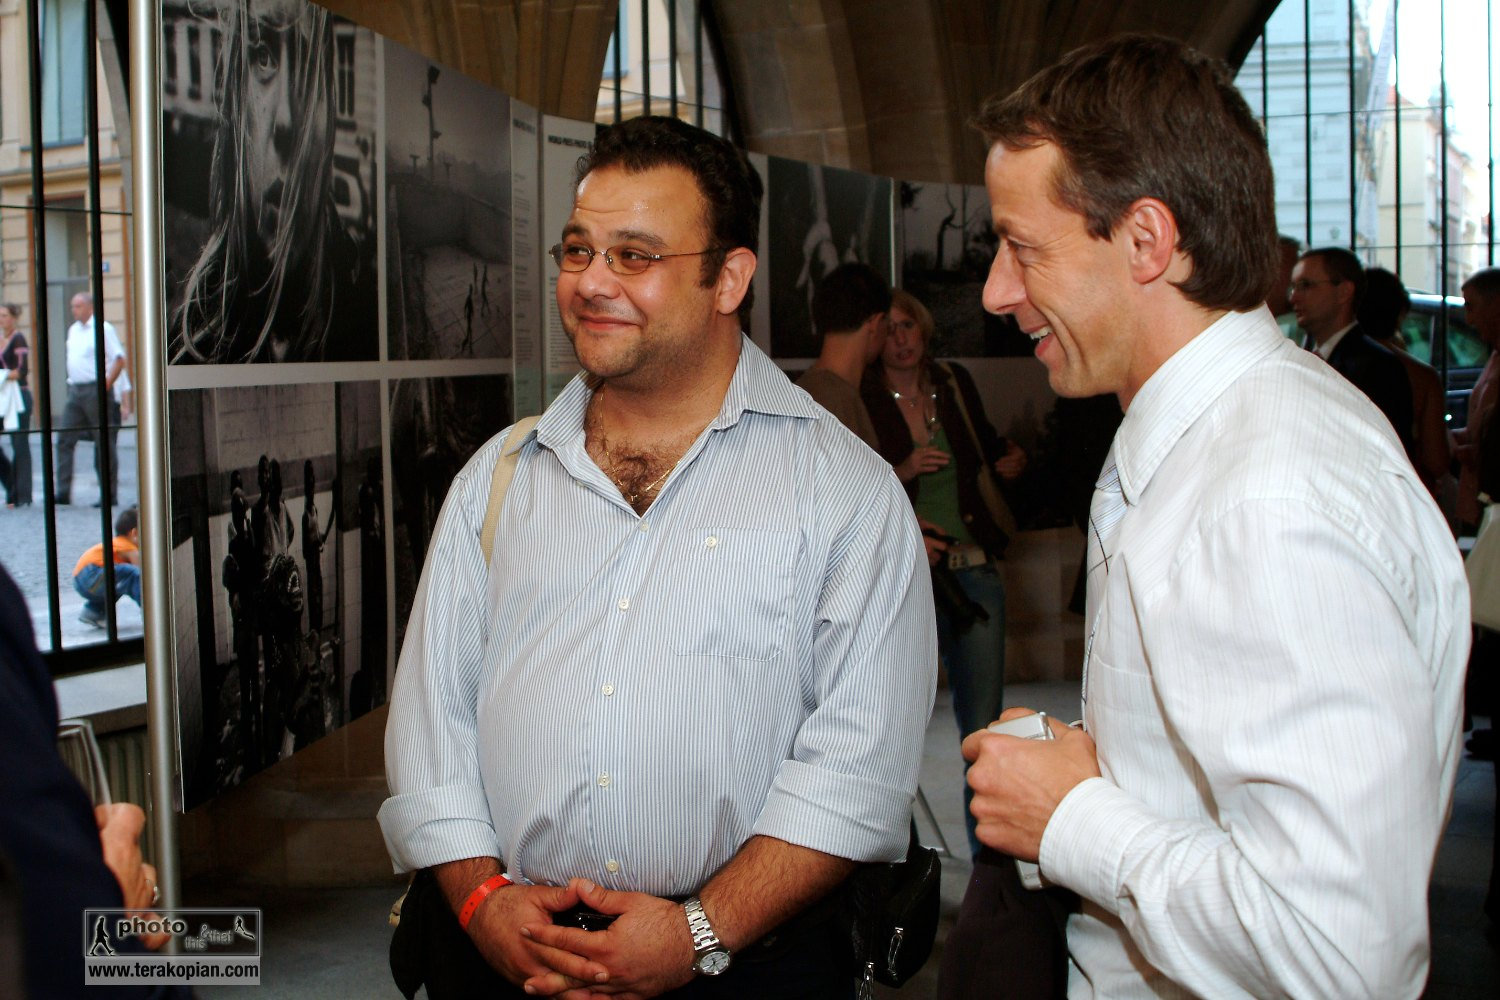 In Prague to recieve the Prize of Prague and view my solo exhibition which was part of the prize. September 2006. Photo: FotoPajer